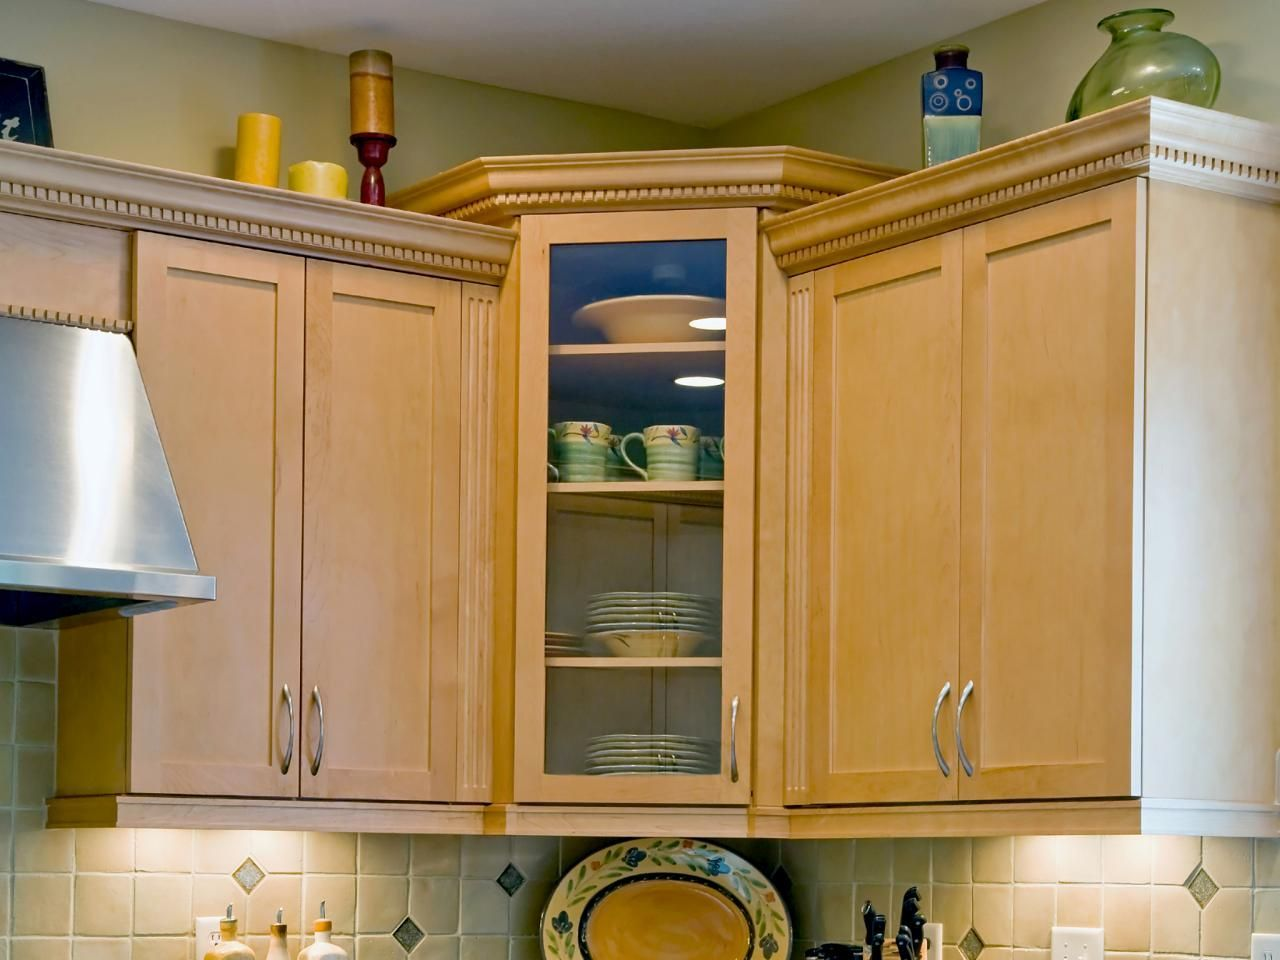 Pictures Of Kitchen Cabinets Beautiful Storage Display Options Kitchen Designs Choo Corner Kitchen Cabinet Kitchen Cabinet Styles Upper Kitchen Cabinets